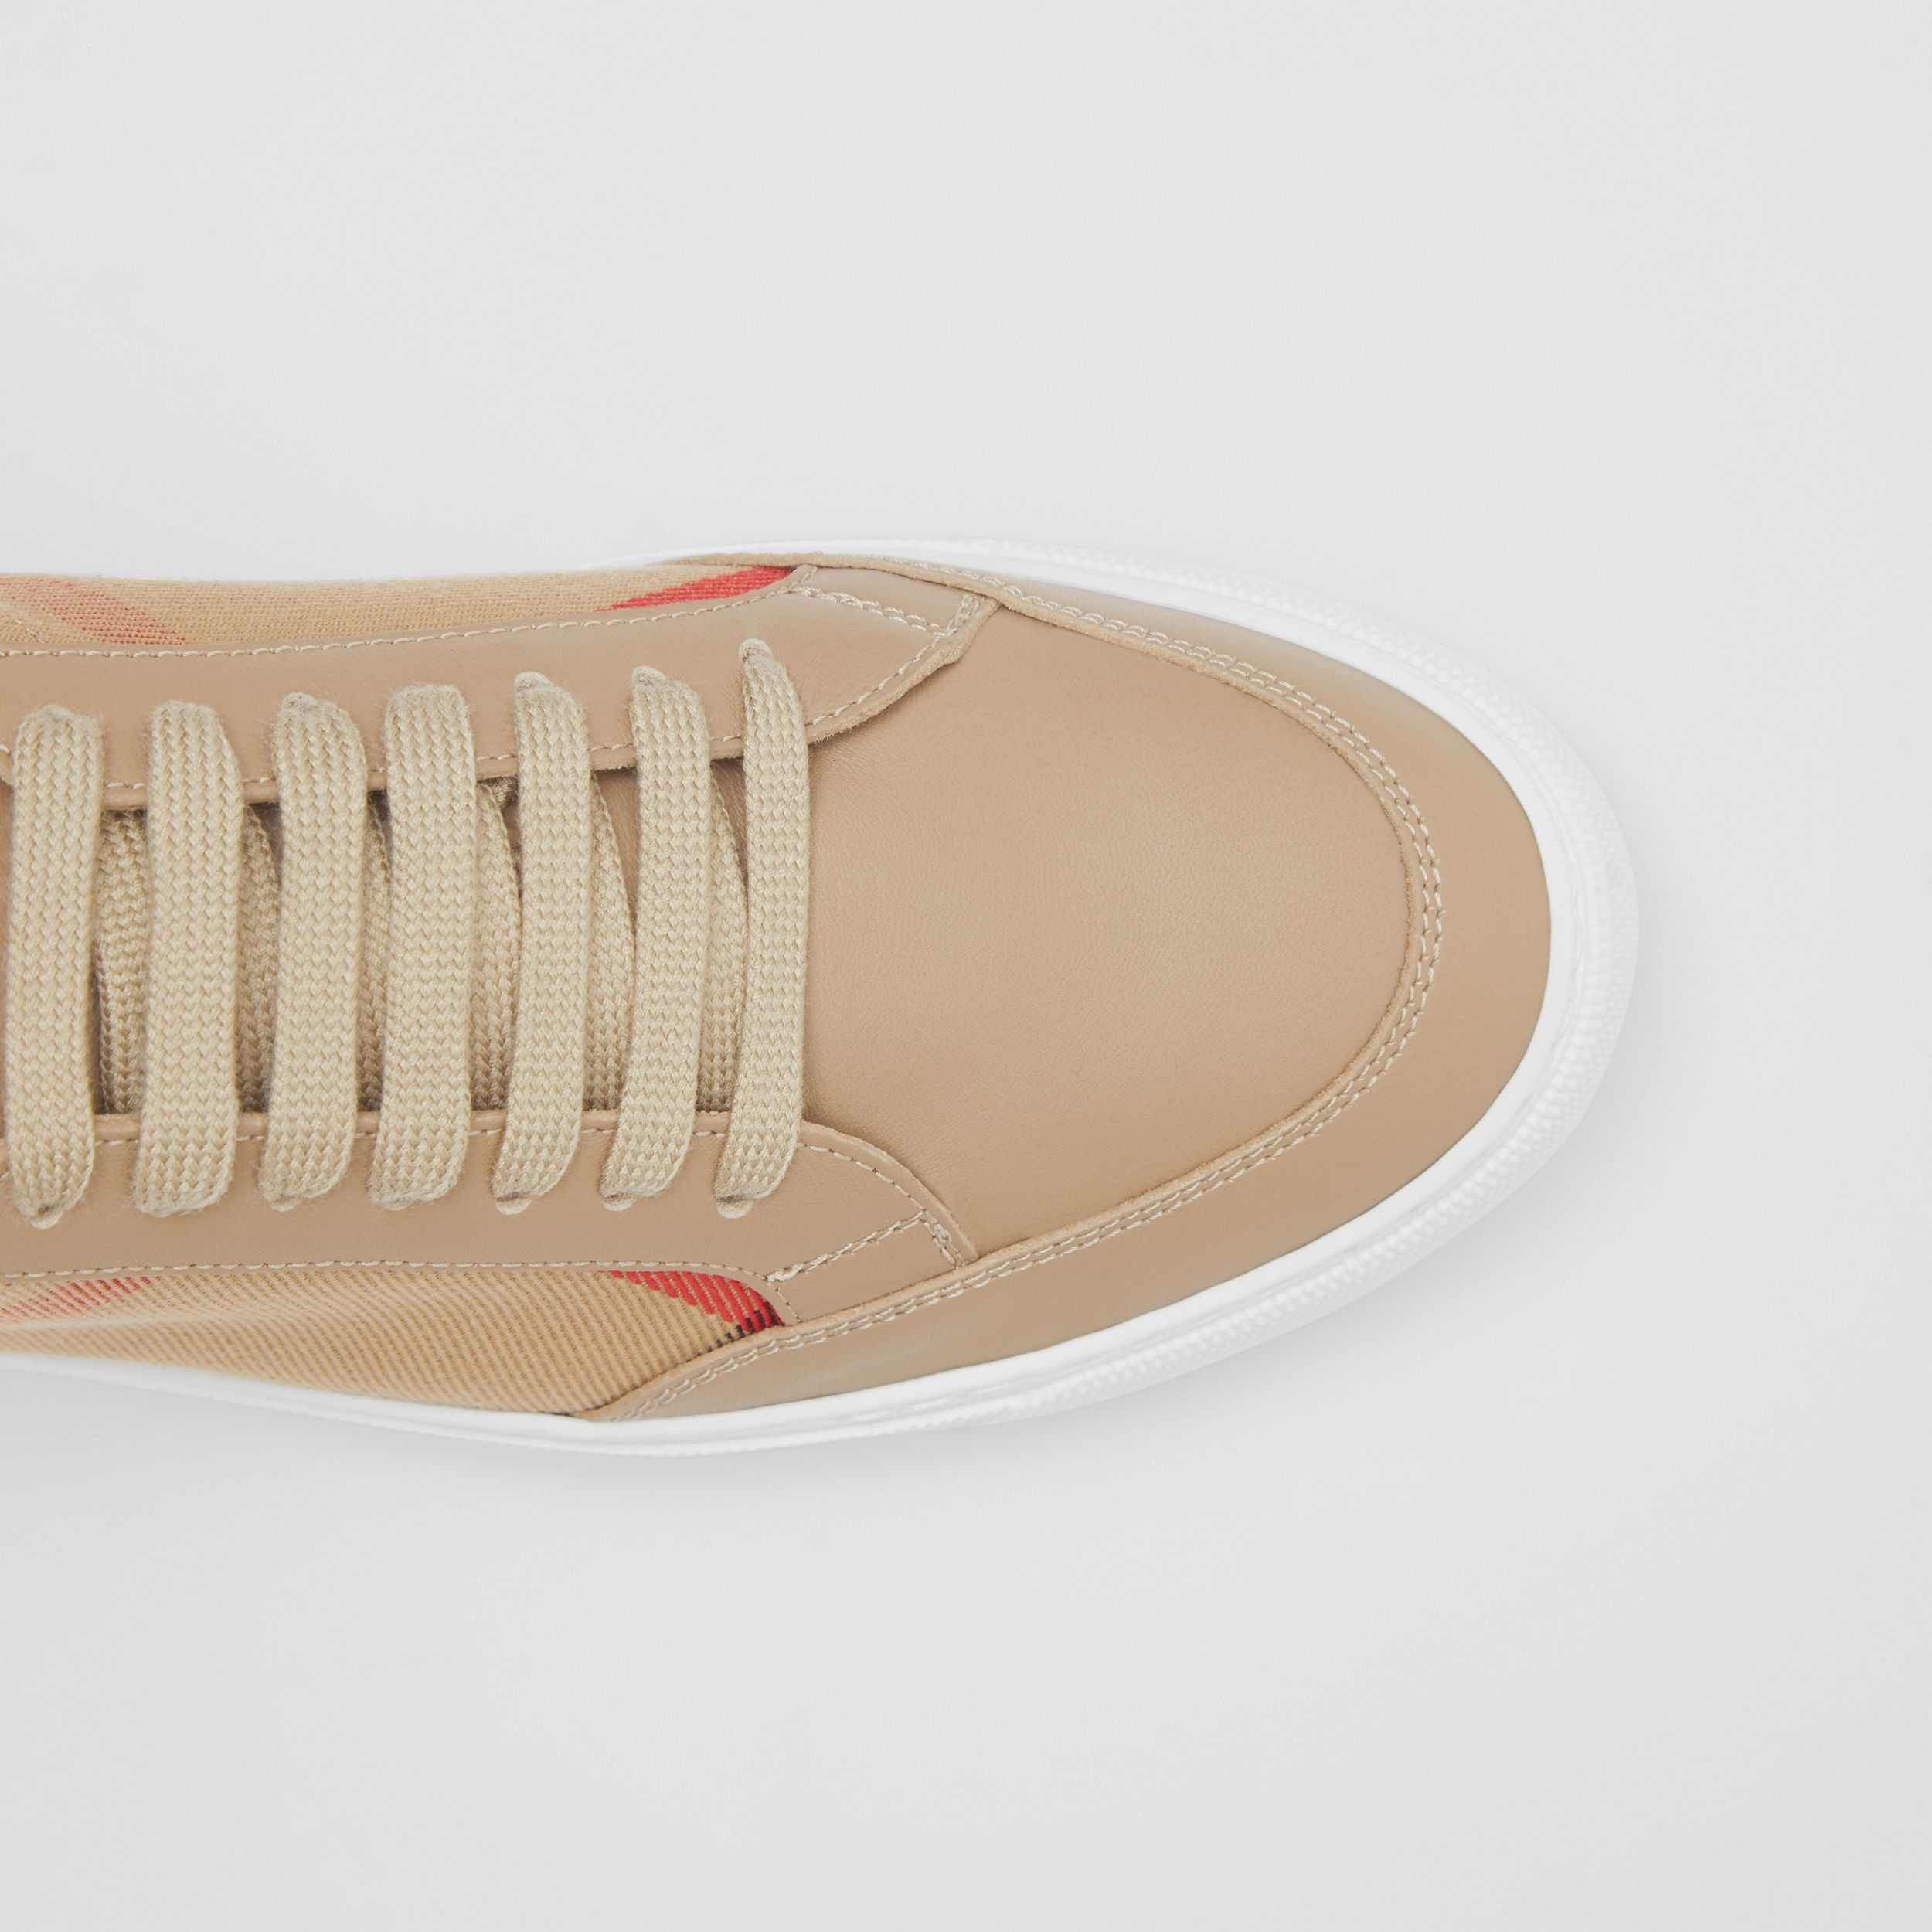 House Check and Leather Sneakers in Tan - Women | Burberry Canada - 2